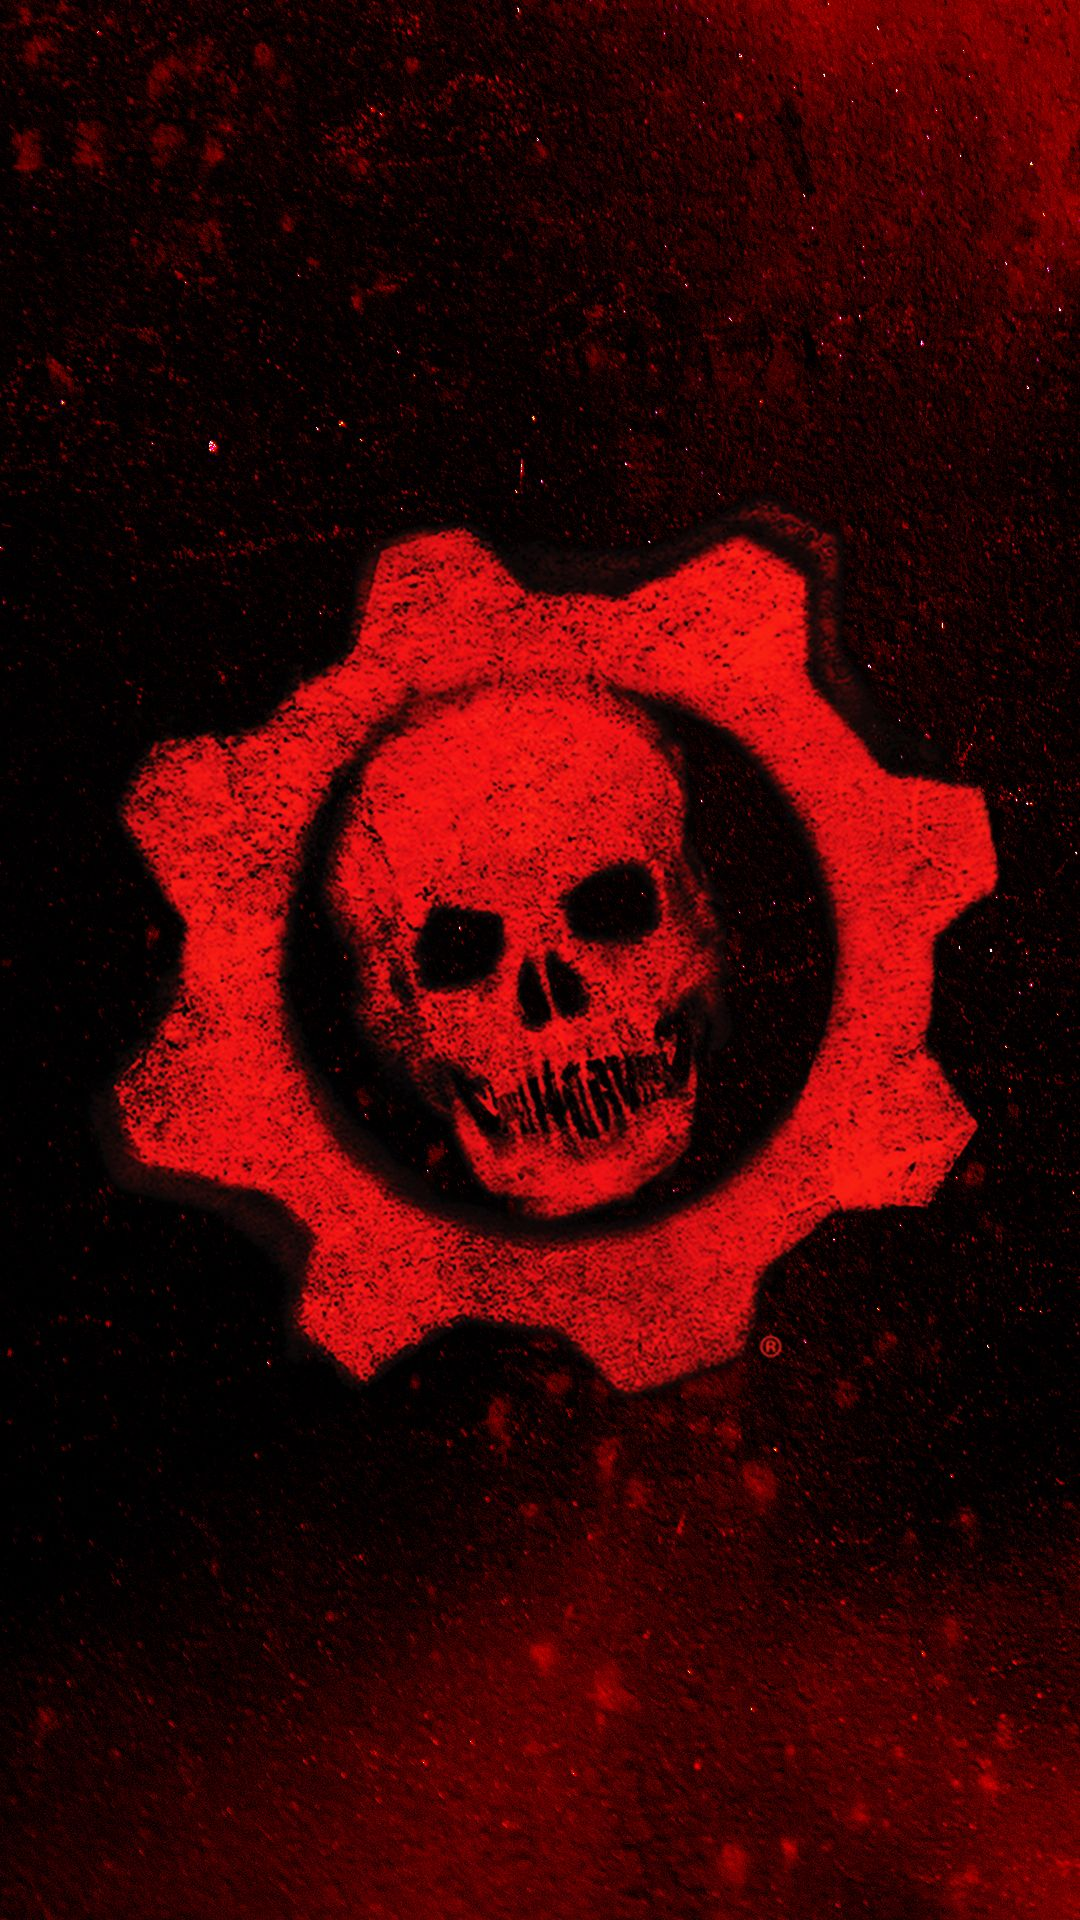 Gears Of War 4 Hd Wallpaper For Your Android Phone Gears Of War Iphone Wallpaper War Tattoo